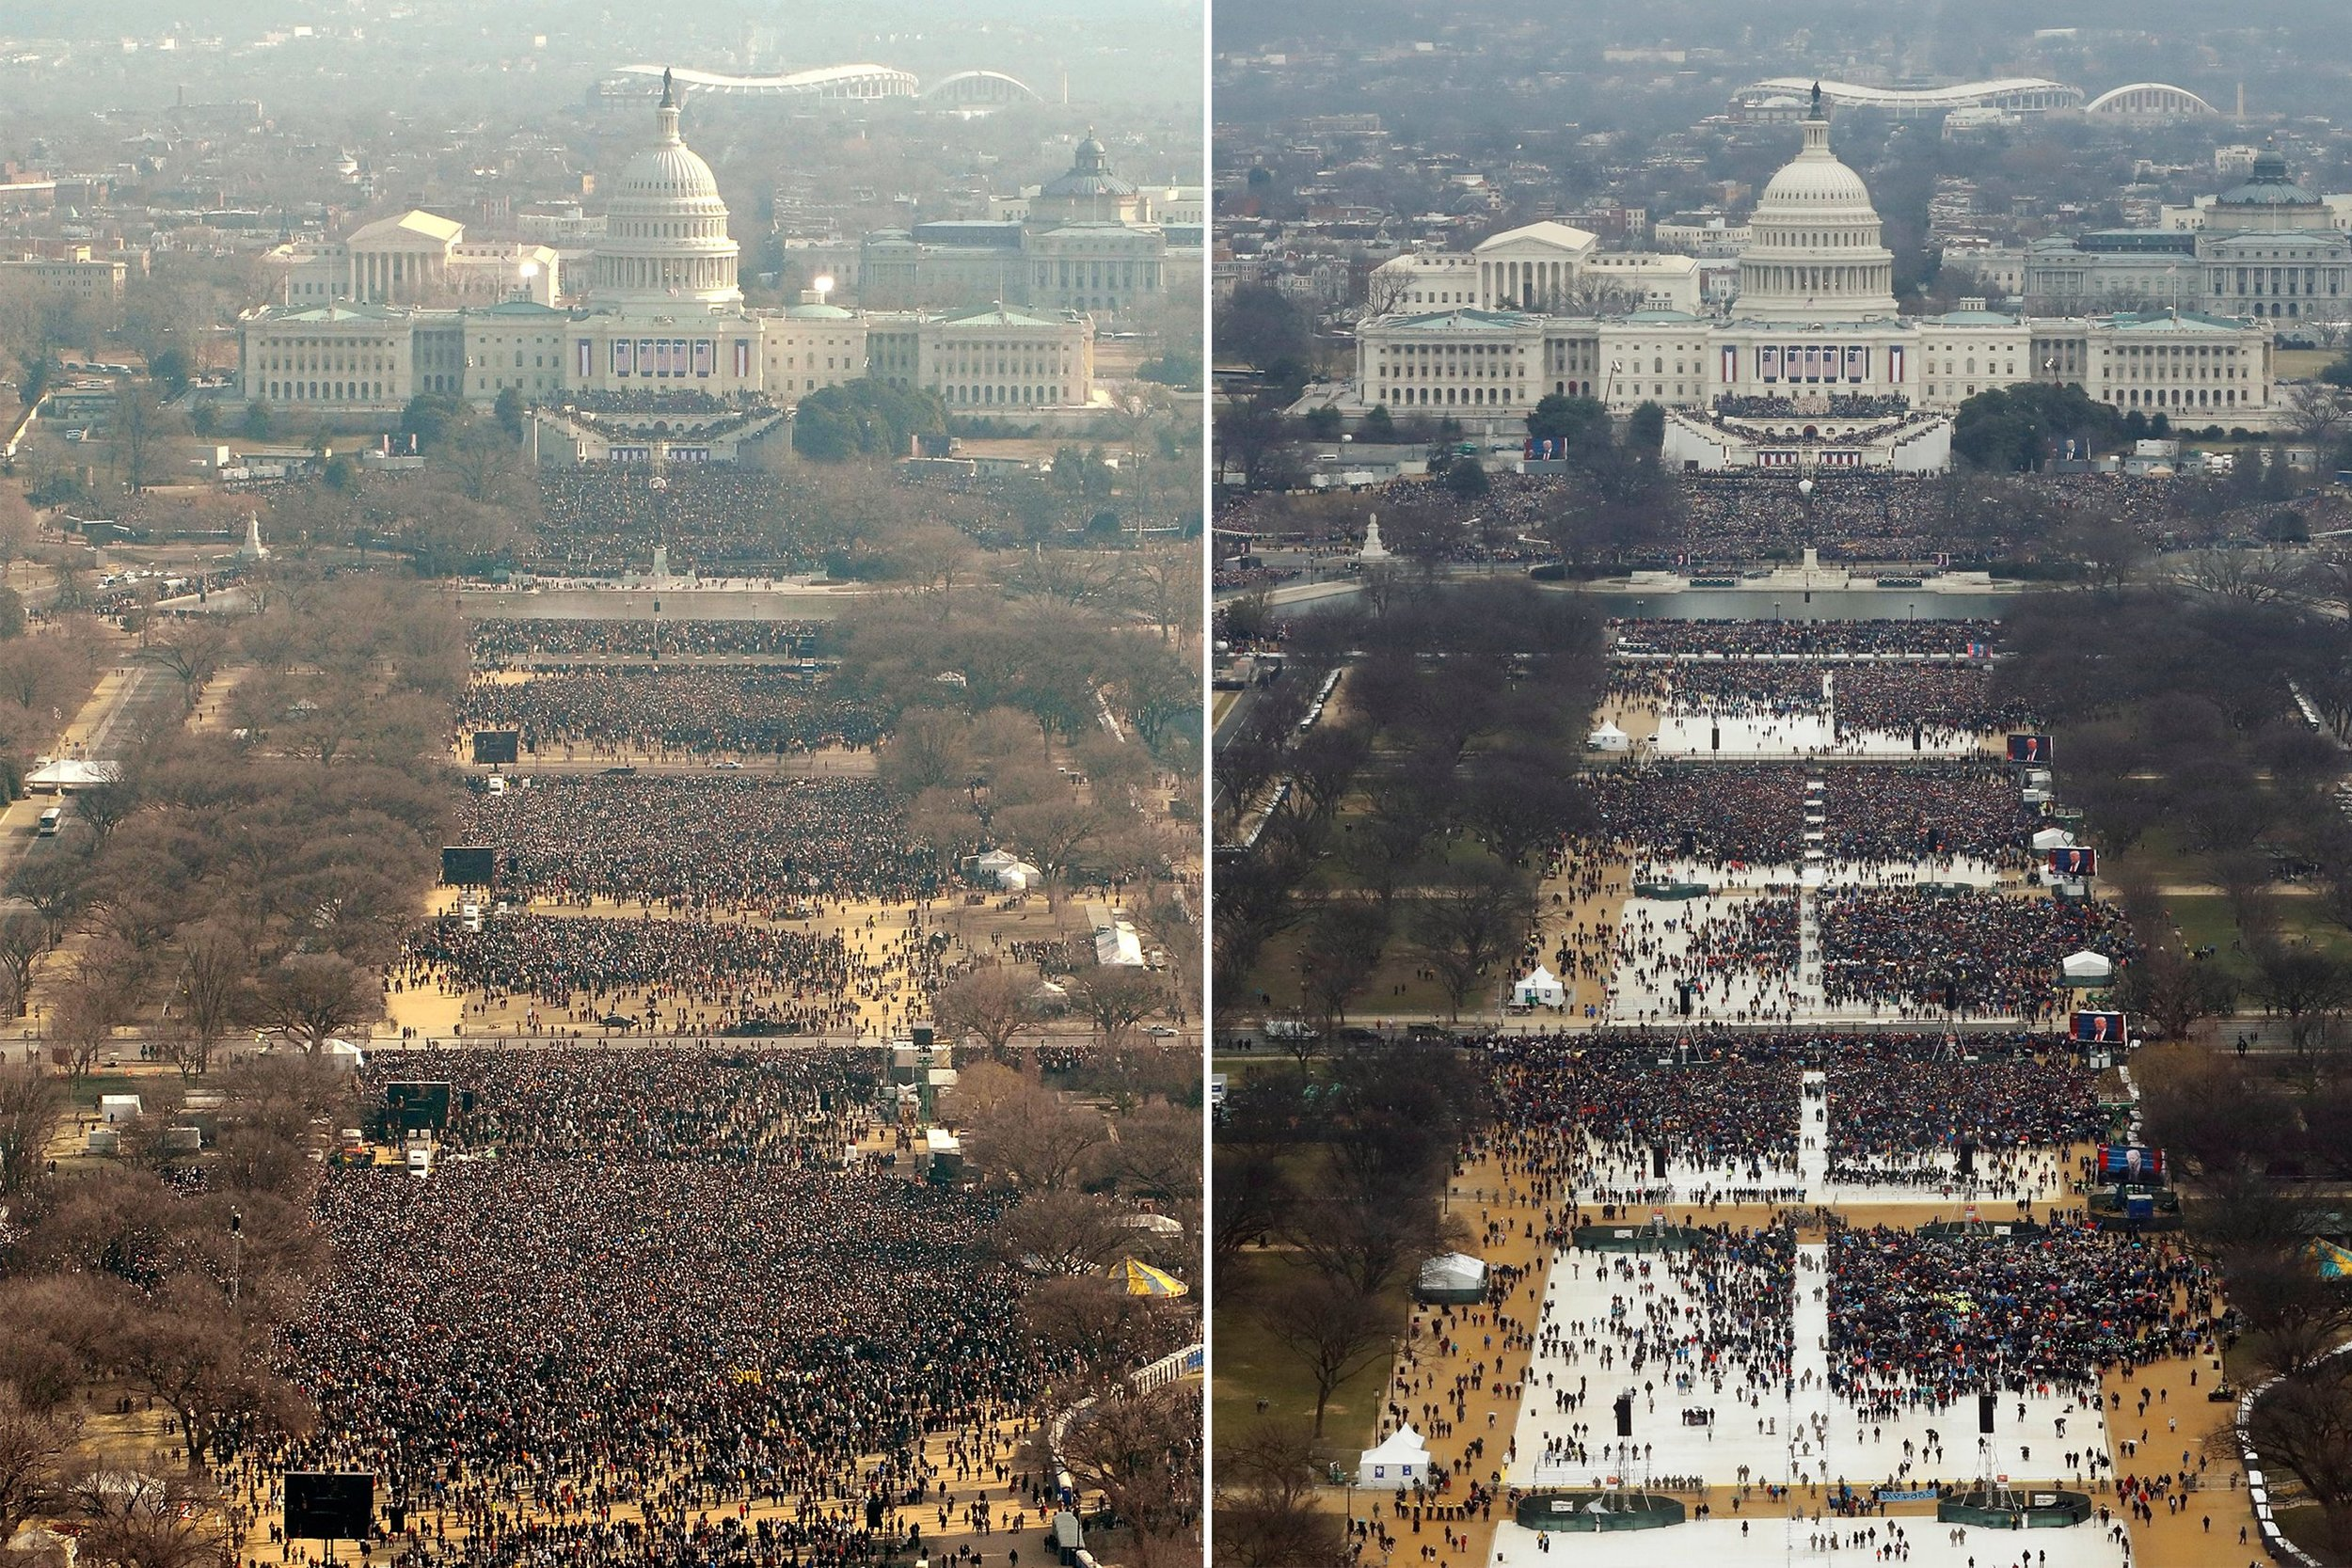 obama-wd-trump-inauguration-crowd-comparison.jpg